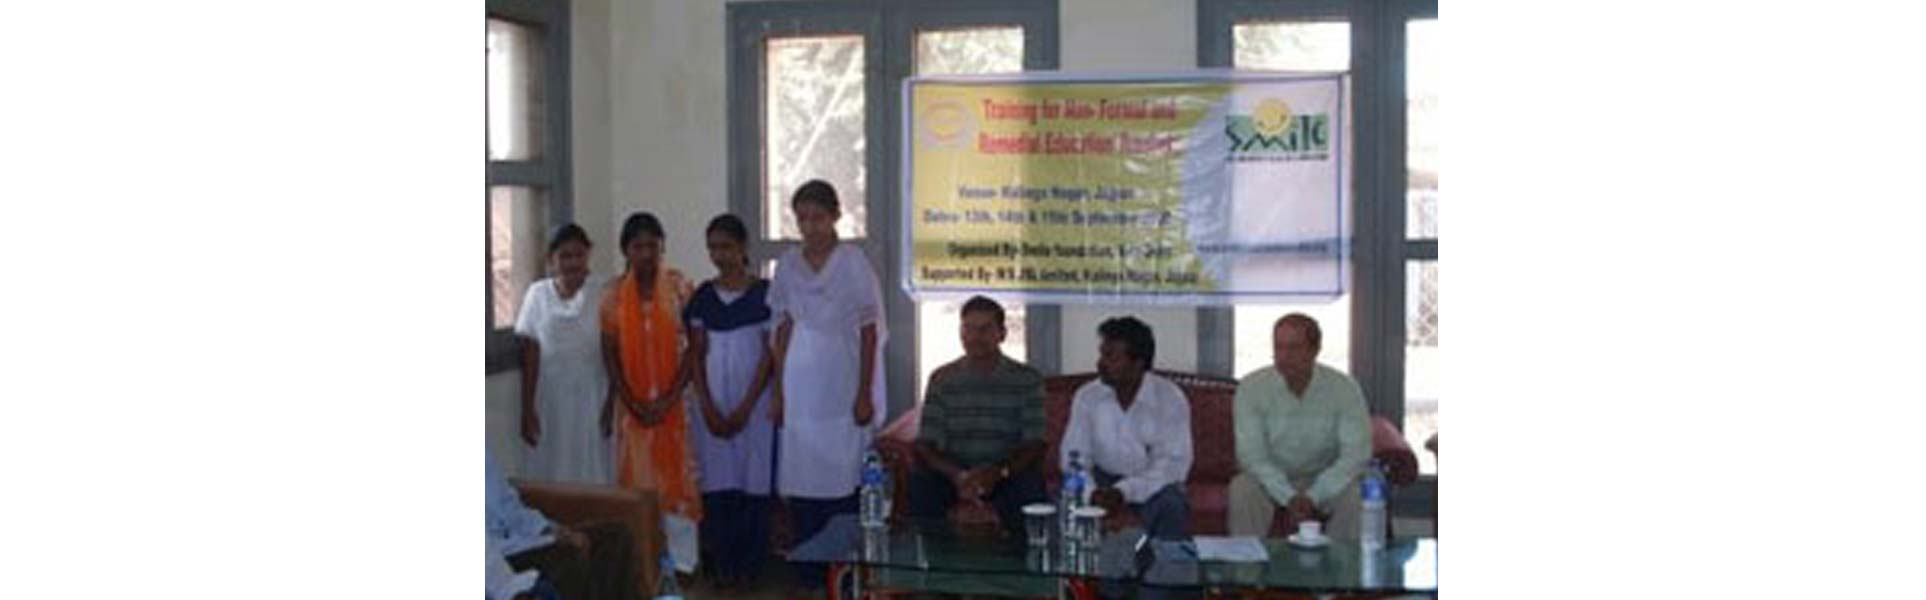 Teachers' Training at Kalinga Nagar